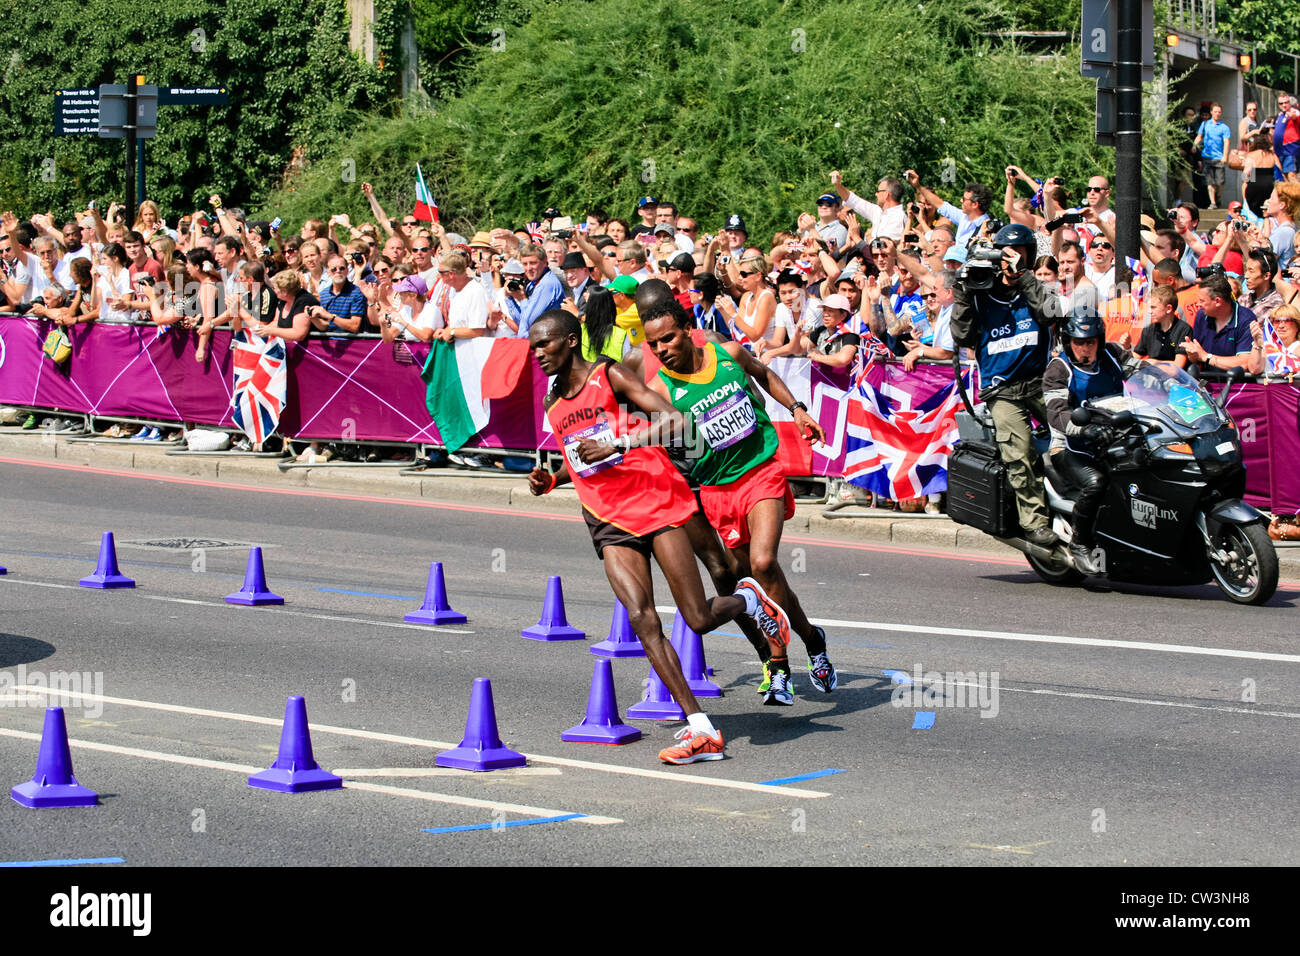 Stephen Kiprotich of Uganda at Tower Hill on his way to winning the Gold Medal in the London 2012 Olympic Marathon - Stock Image